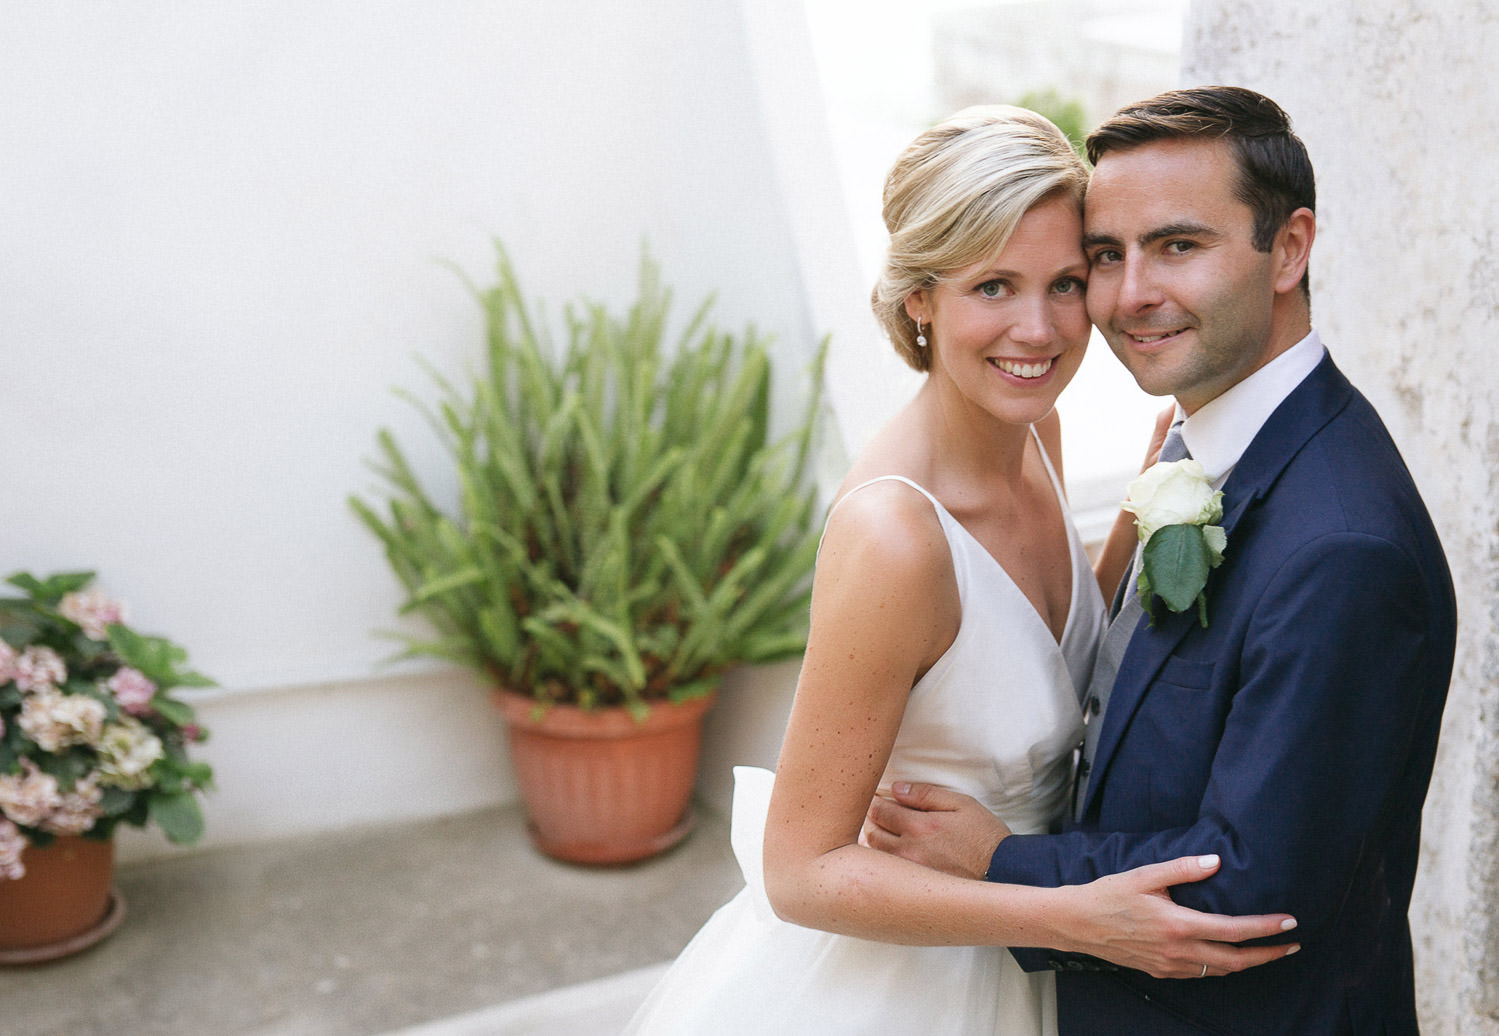 Elegant intimate wedding in Ravello - Italian destination wedding photographer - Camilla Anchisi